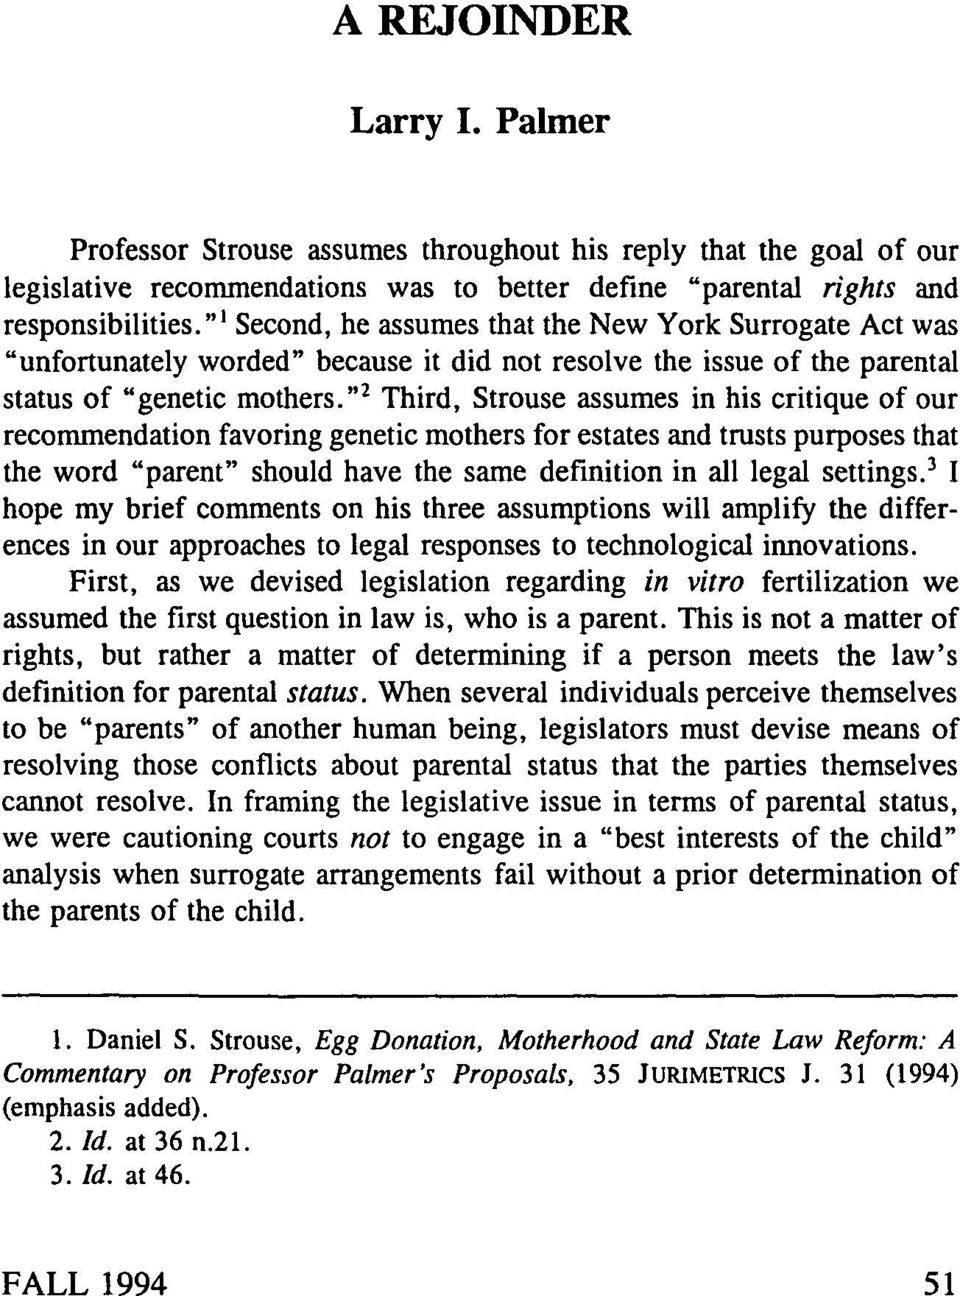 """ 2 Third, Strouse assumes in his critique of our recommendation favoring genetic mothers for estates and trusts purposes that the word ""parent"" should have the same definition in all legal settings."